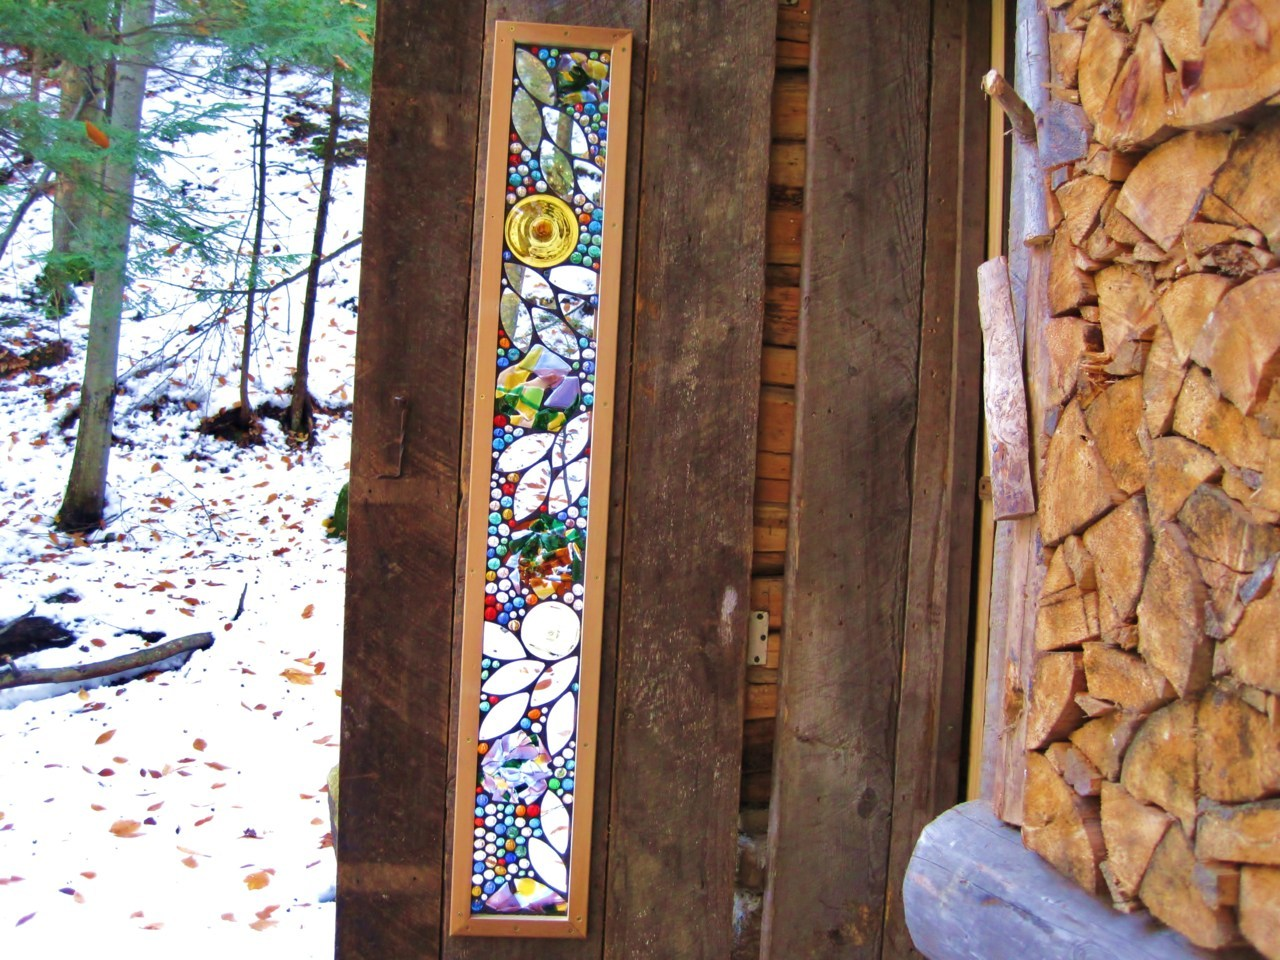 Door installation in a quaint Cordwood cabin.. This piece has slumped glass in it. The outside is protected with plexiglass, and installed with a space between the stained glass and plexiglass to make it a double paned window.